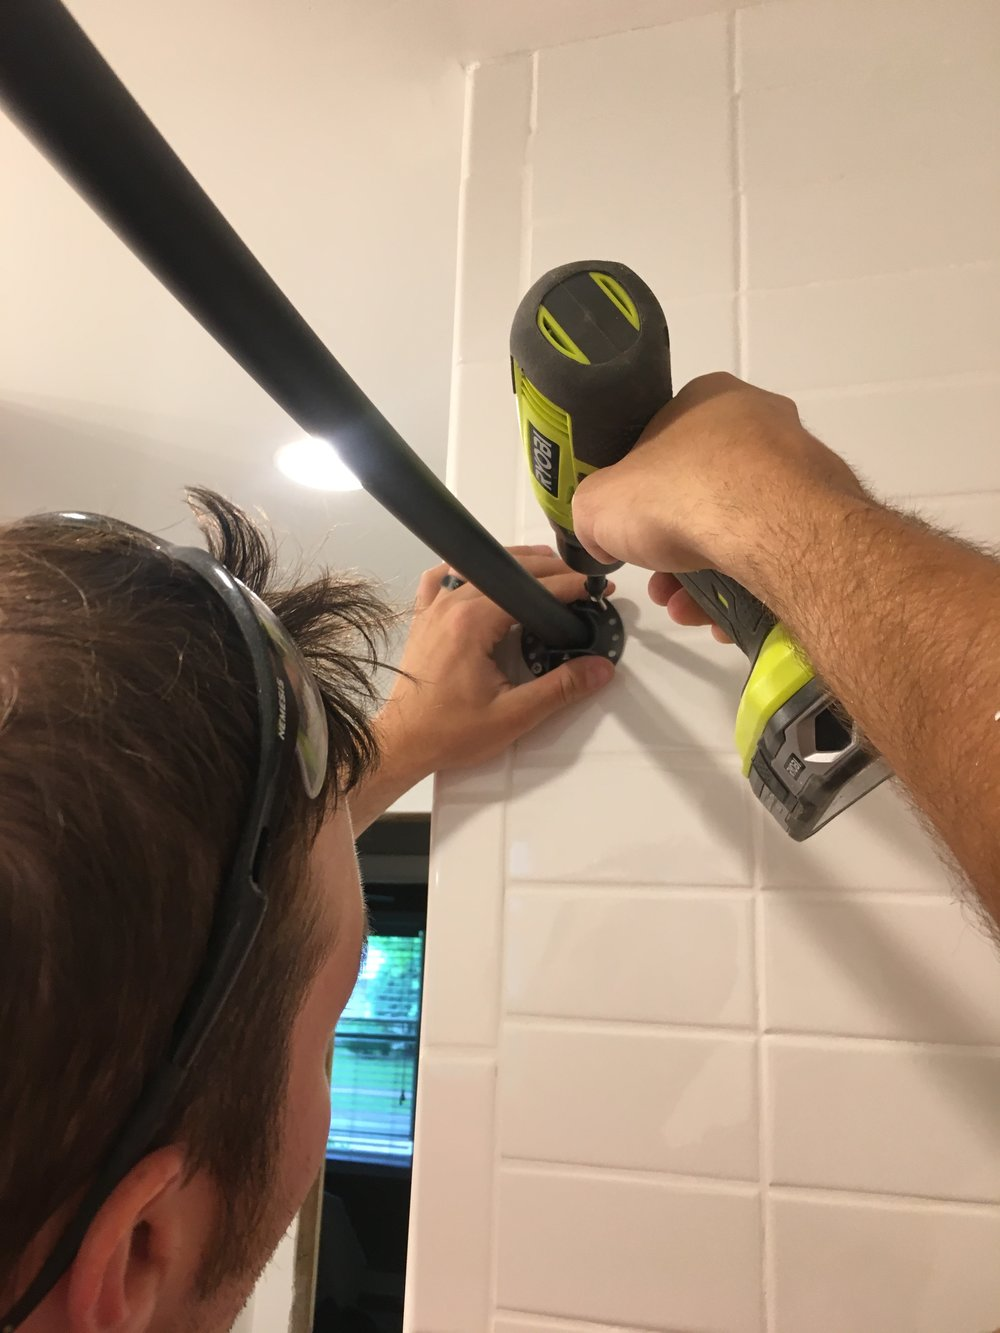 Installing a Shower Rod on Tile | Our Fifties Fixer Upper